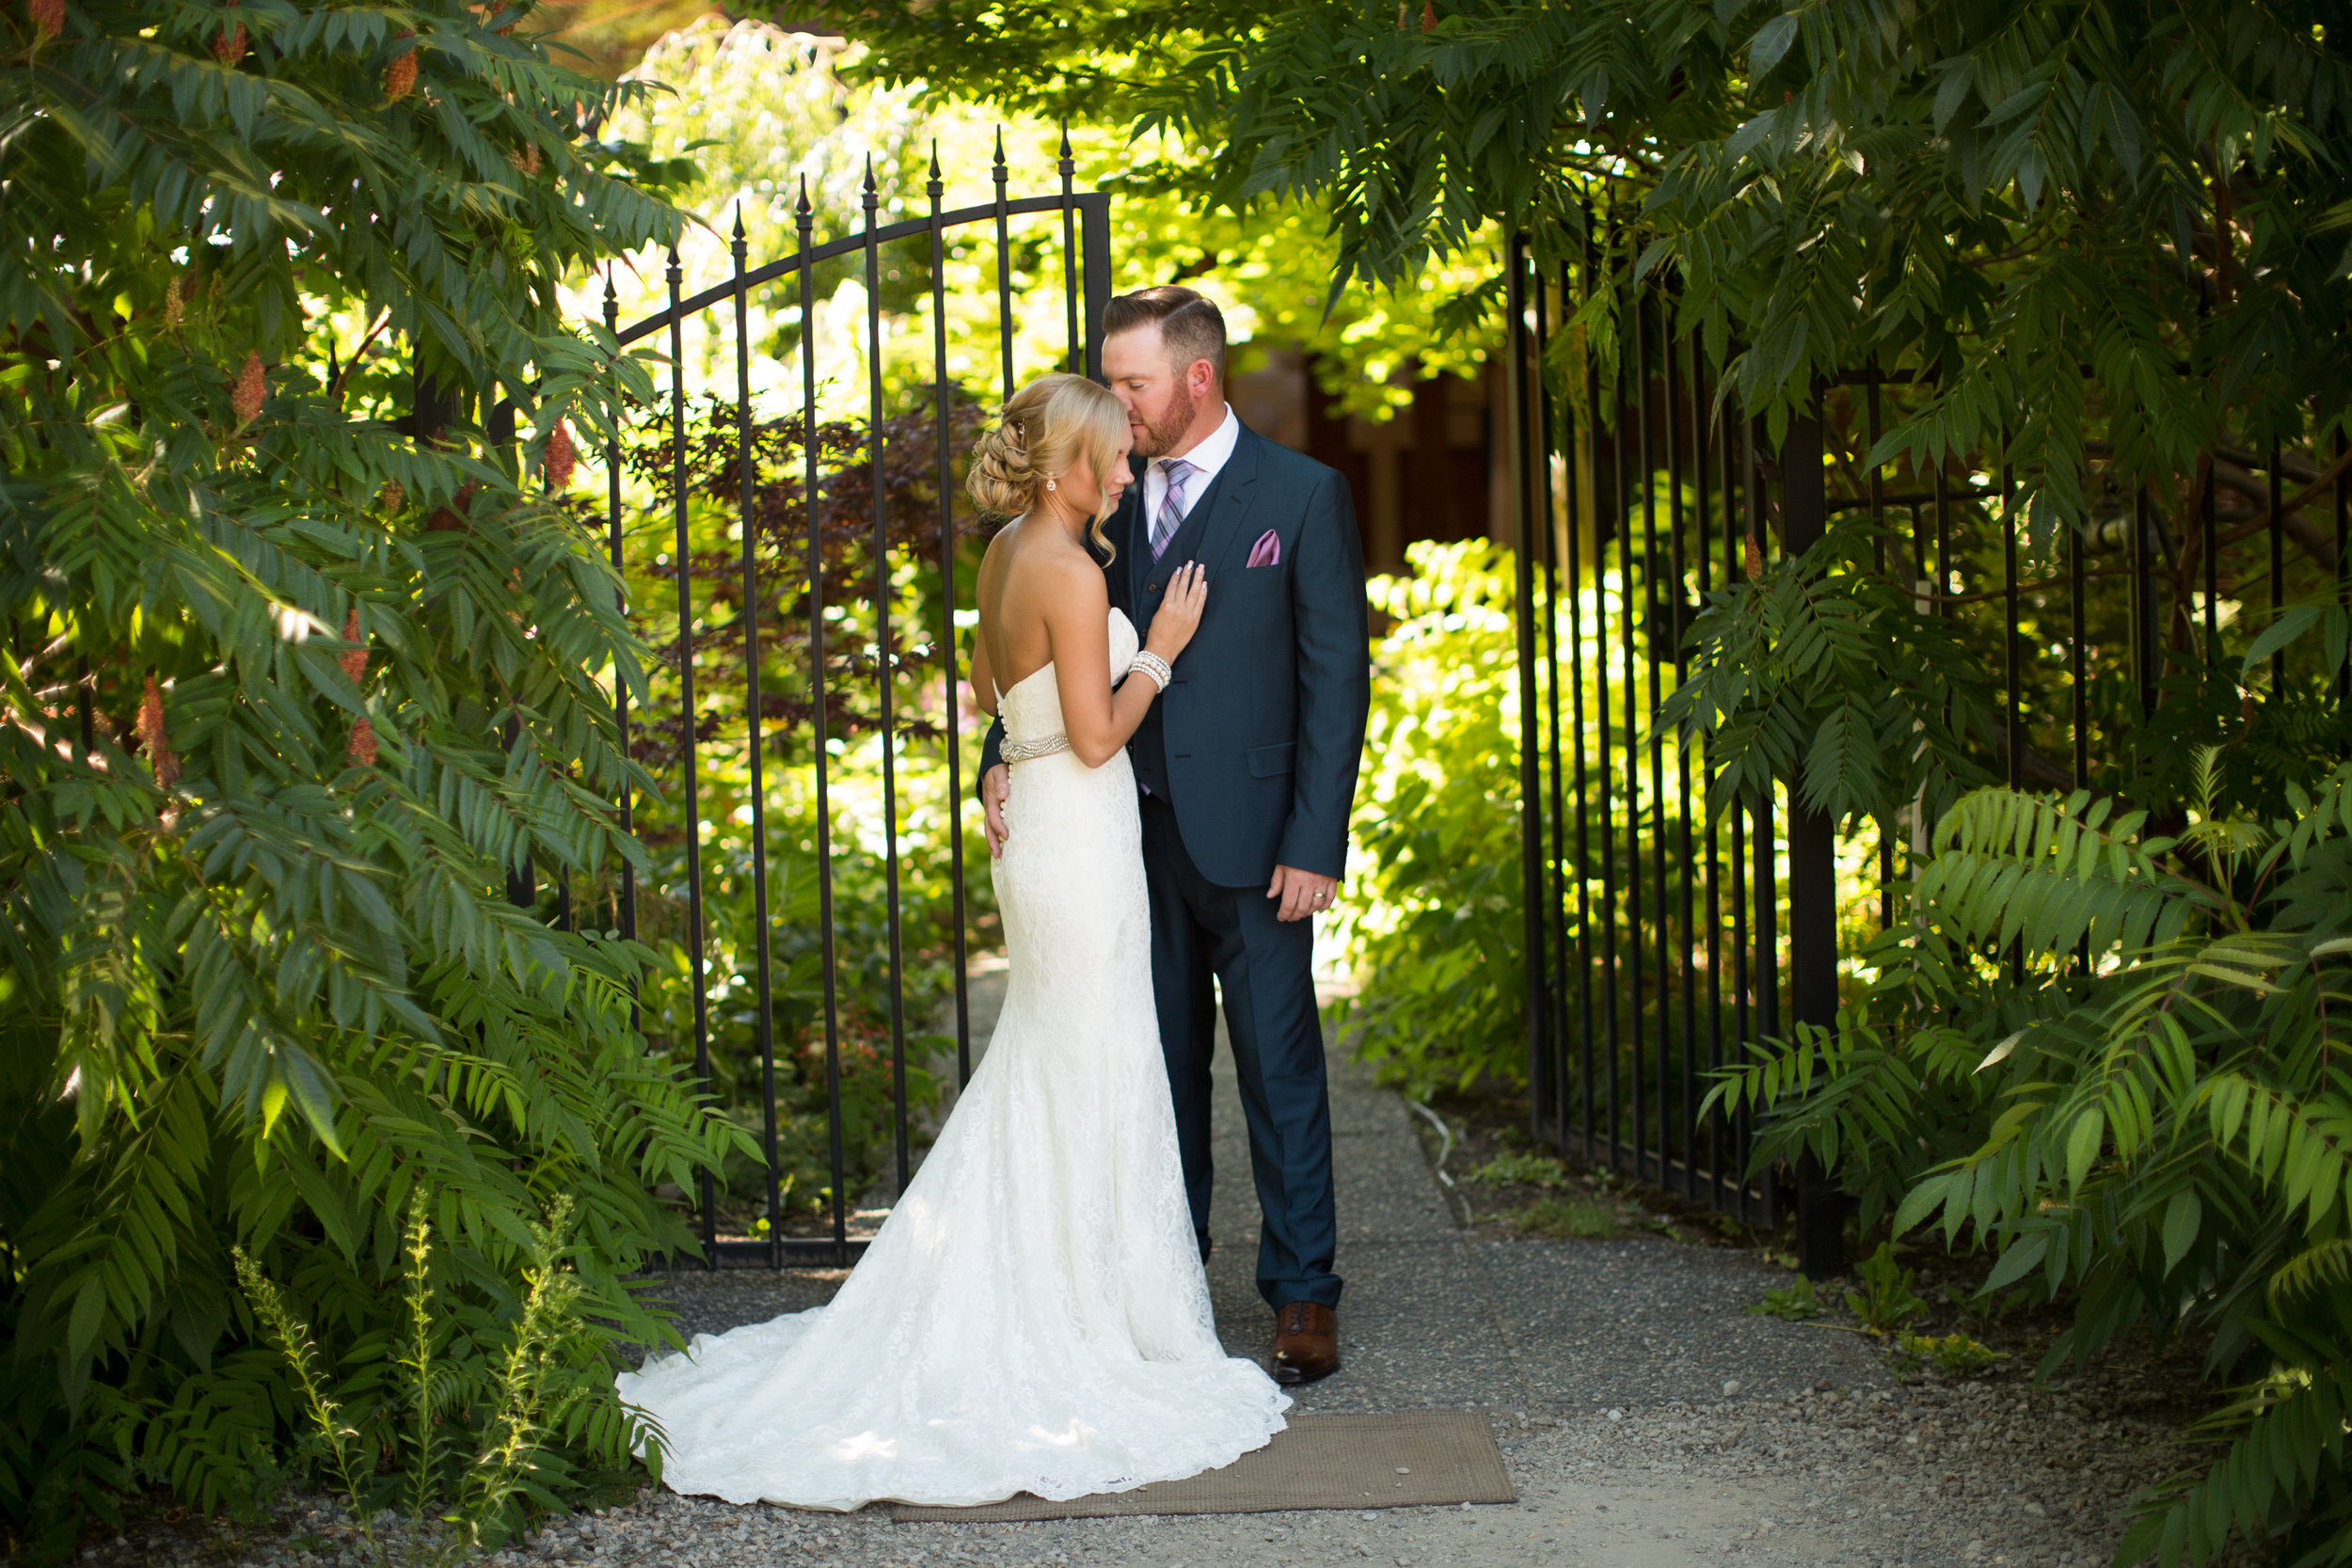 Second Photographer for White Willow Photography Wedding in Kaleden British Columbia Canada.